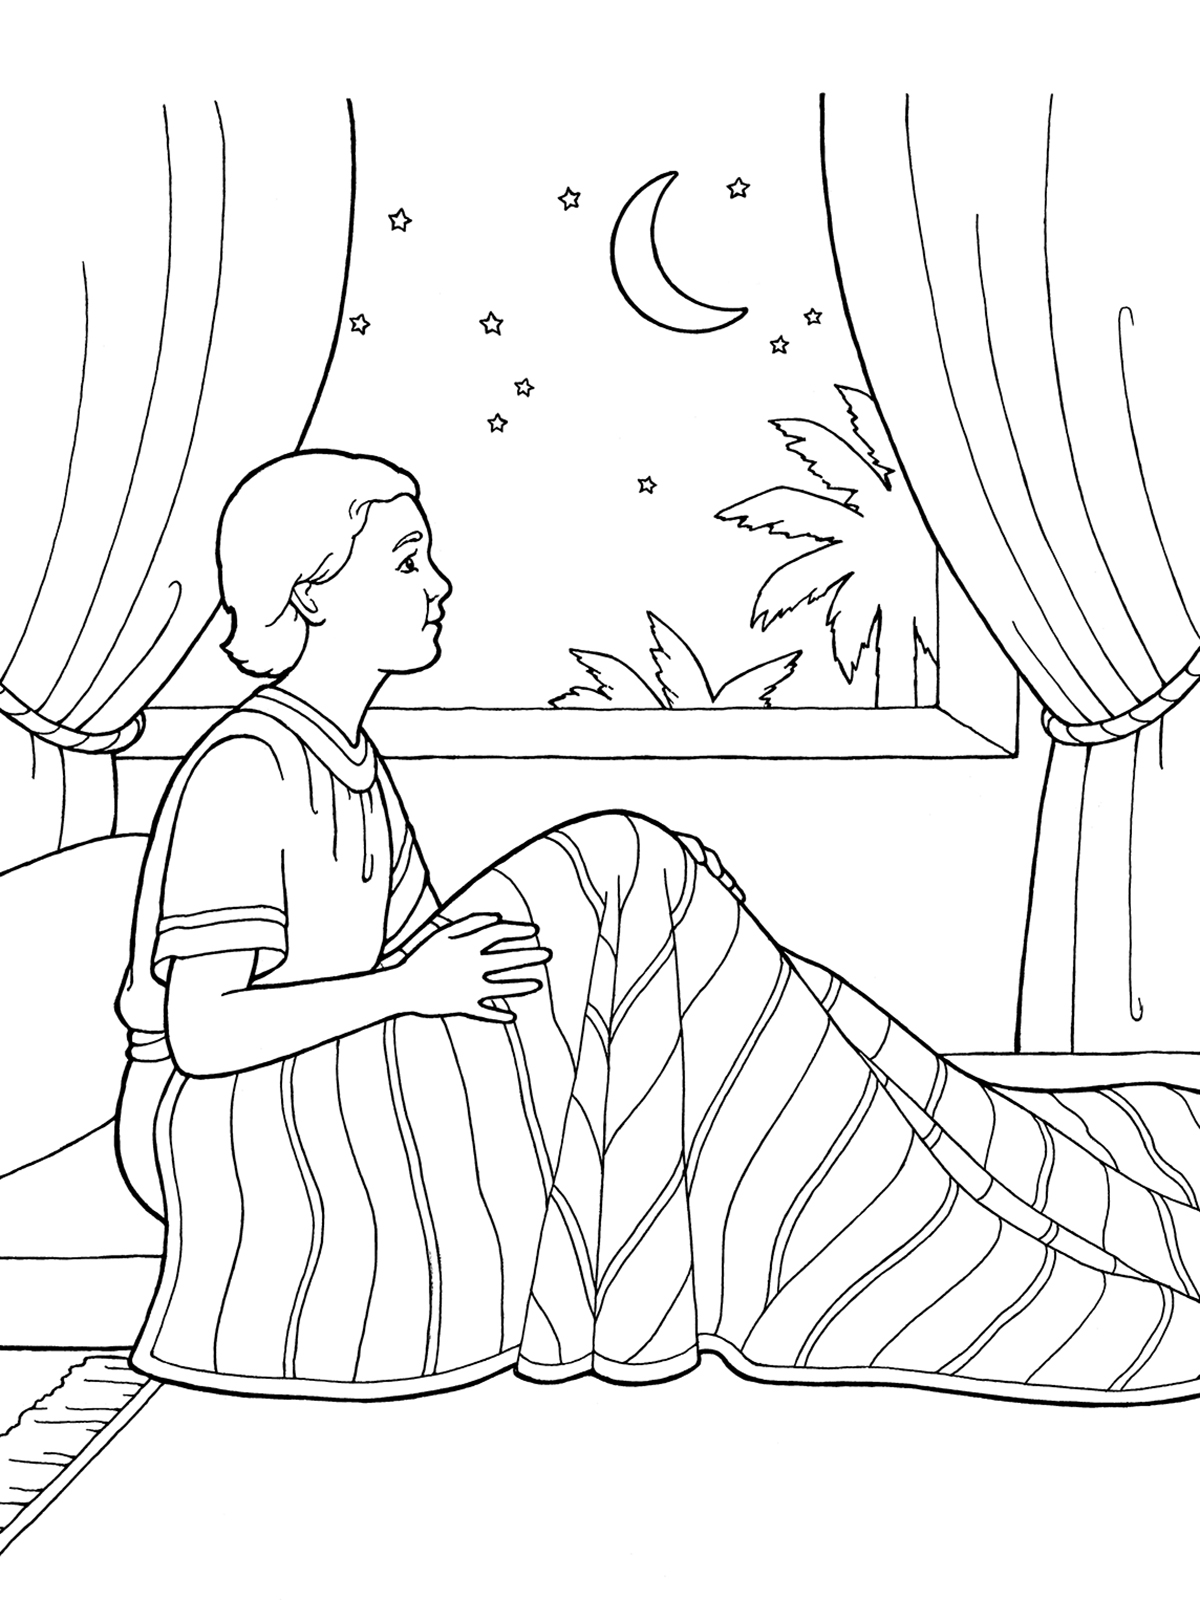 Bible Coloring Pages Hannah - Coloring Home | 1600x1200